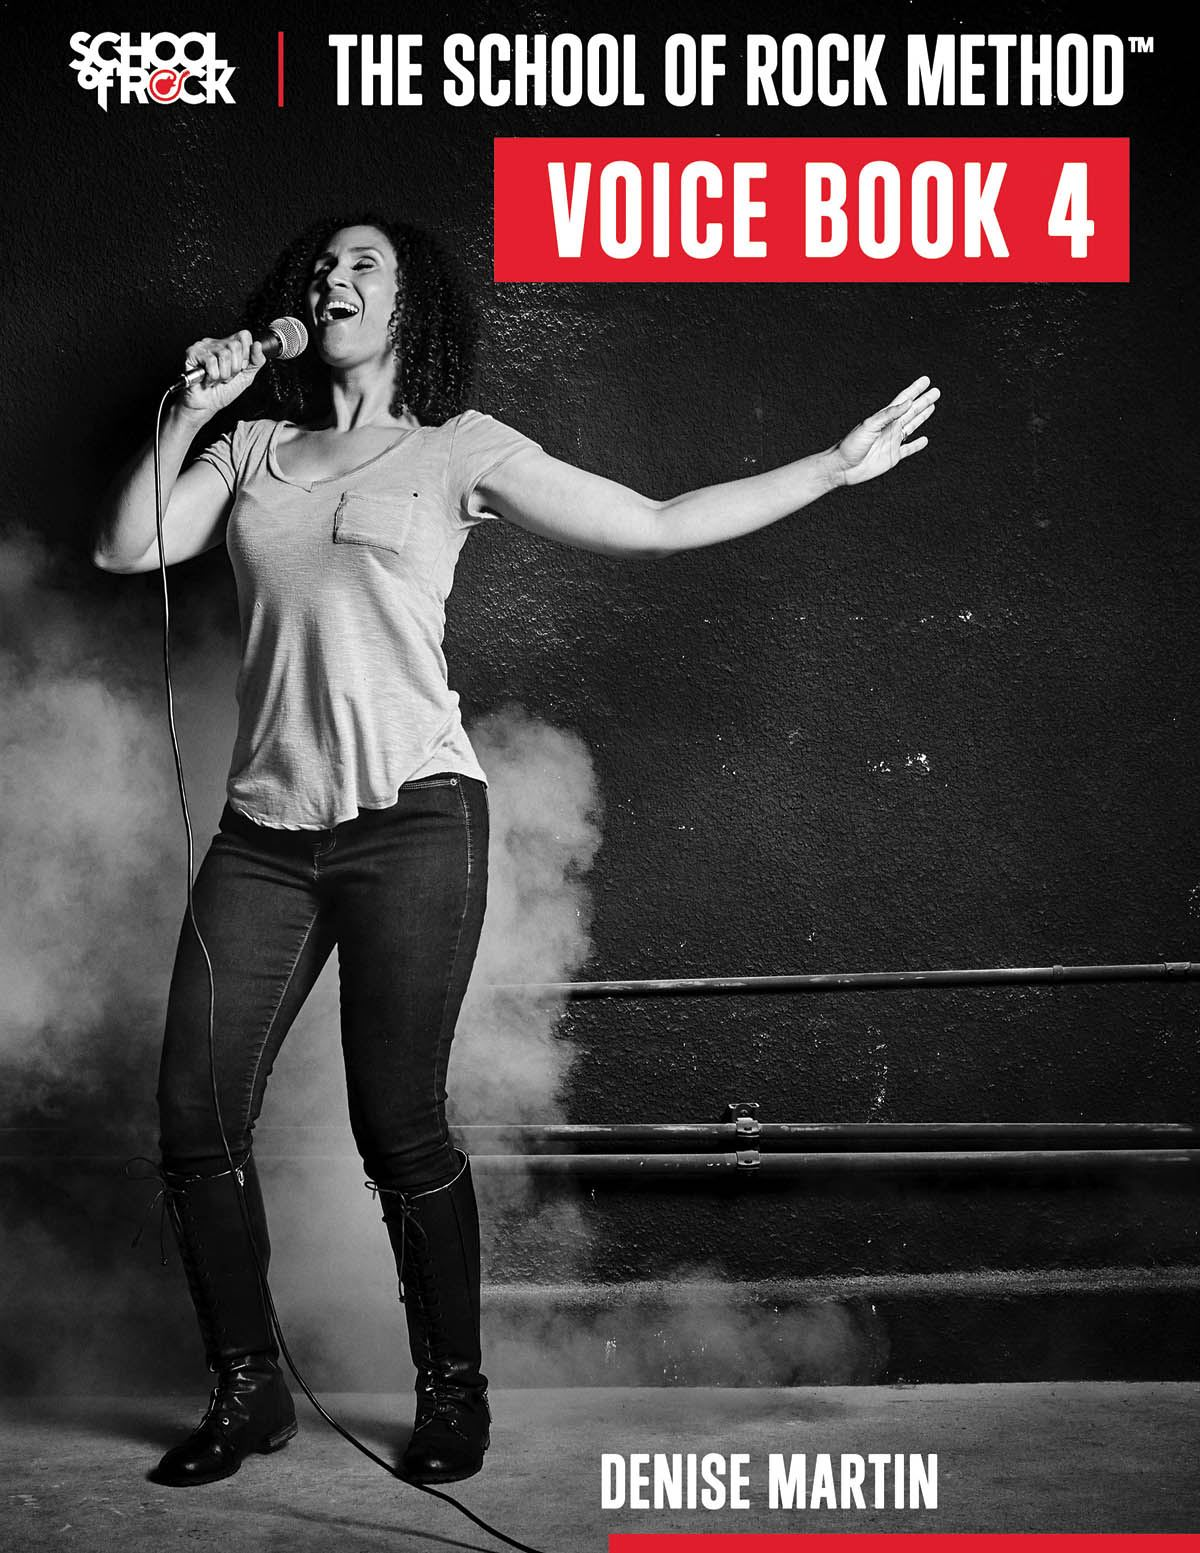 Denise Martin: The School of Rock Method - Voice Book 4: Vocal Solo: Vocal Tutor